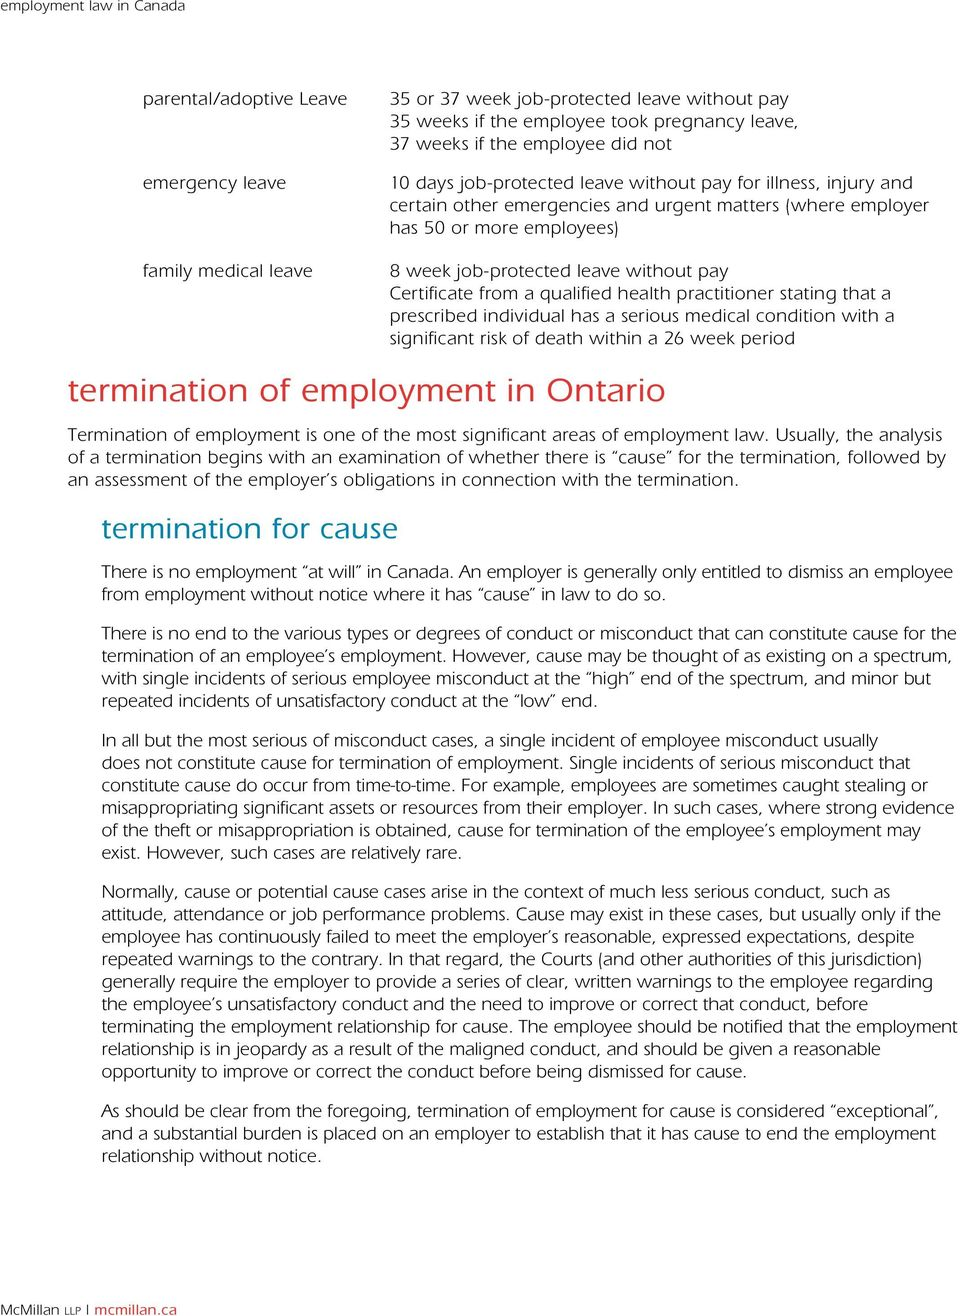 a qualified health practitioner stating that a prescribed individual has a serious medical condition with a significant risk of death within a 26 week period termination of employment in Ontario